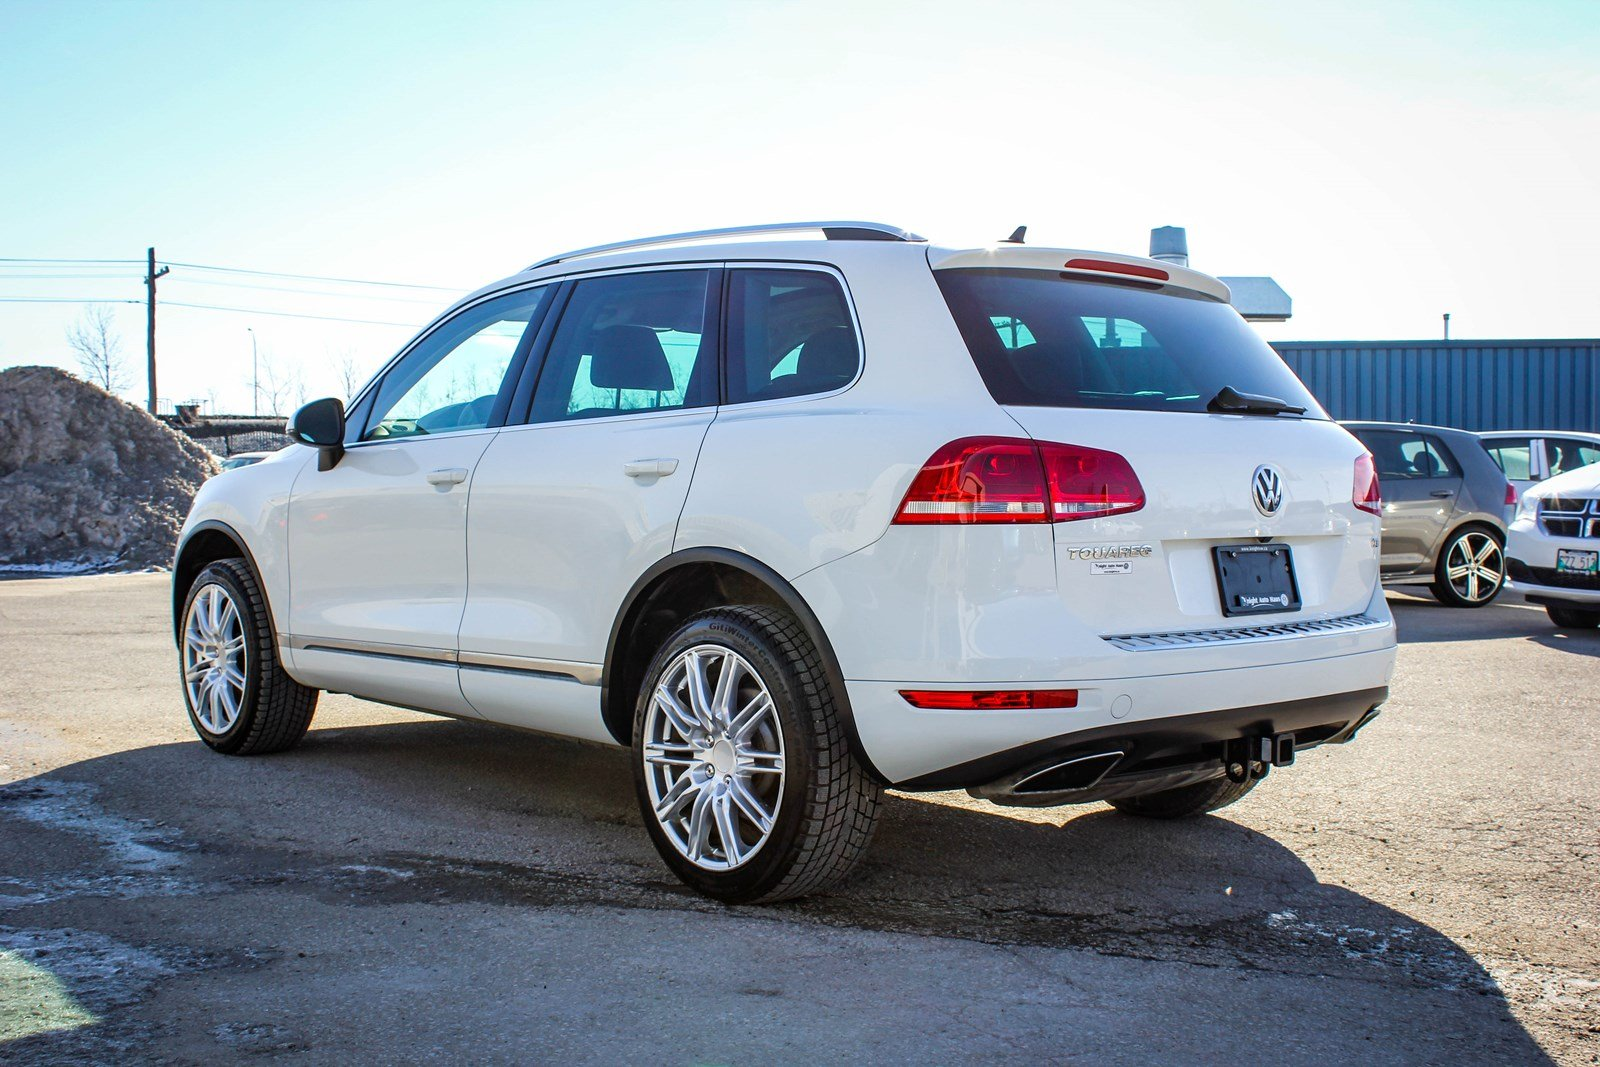 2014 volkswagen touareg tdi w 20 inch rims navigation leather sunroof awd sport utility auto. Black Bedroom Furniture Sets. Home Design Ideas